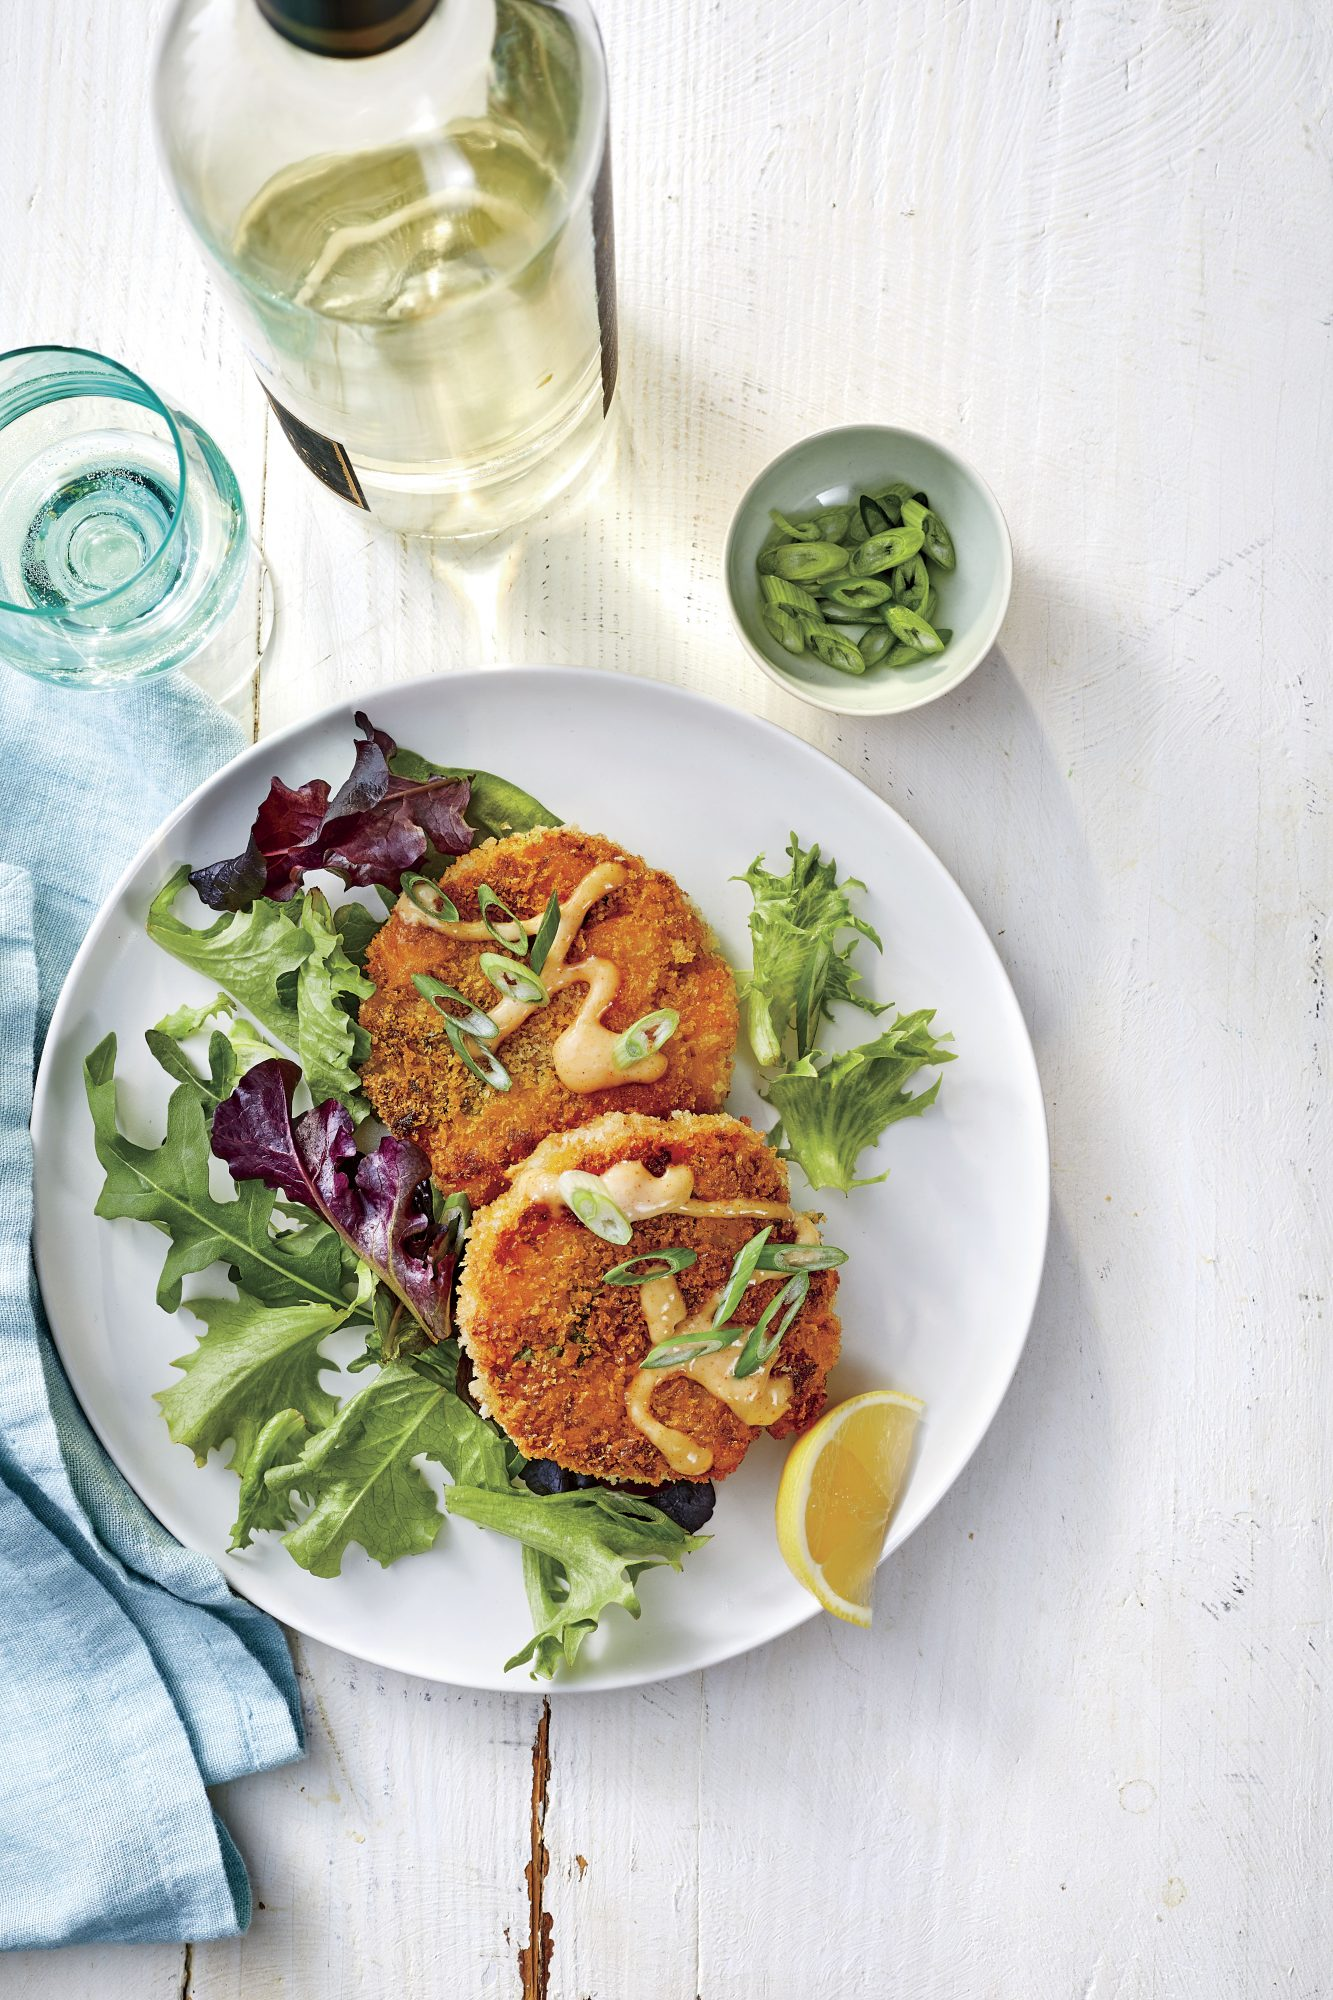 Shrimp Cakes with Smoky Horseradish Sauce